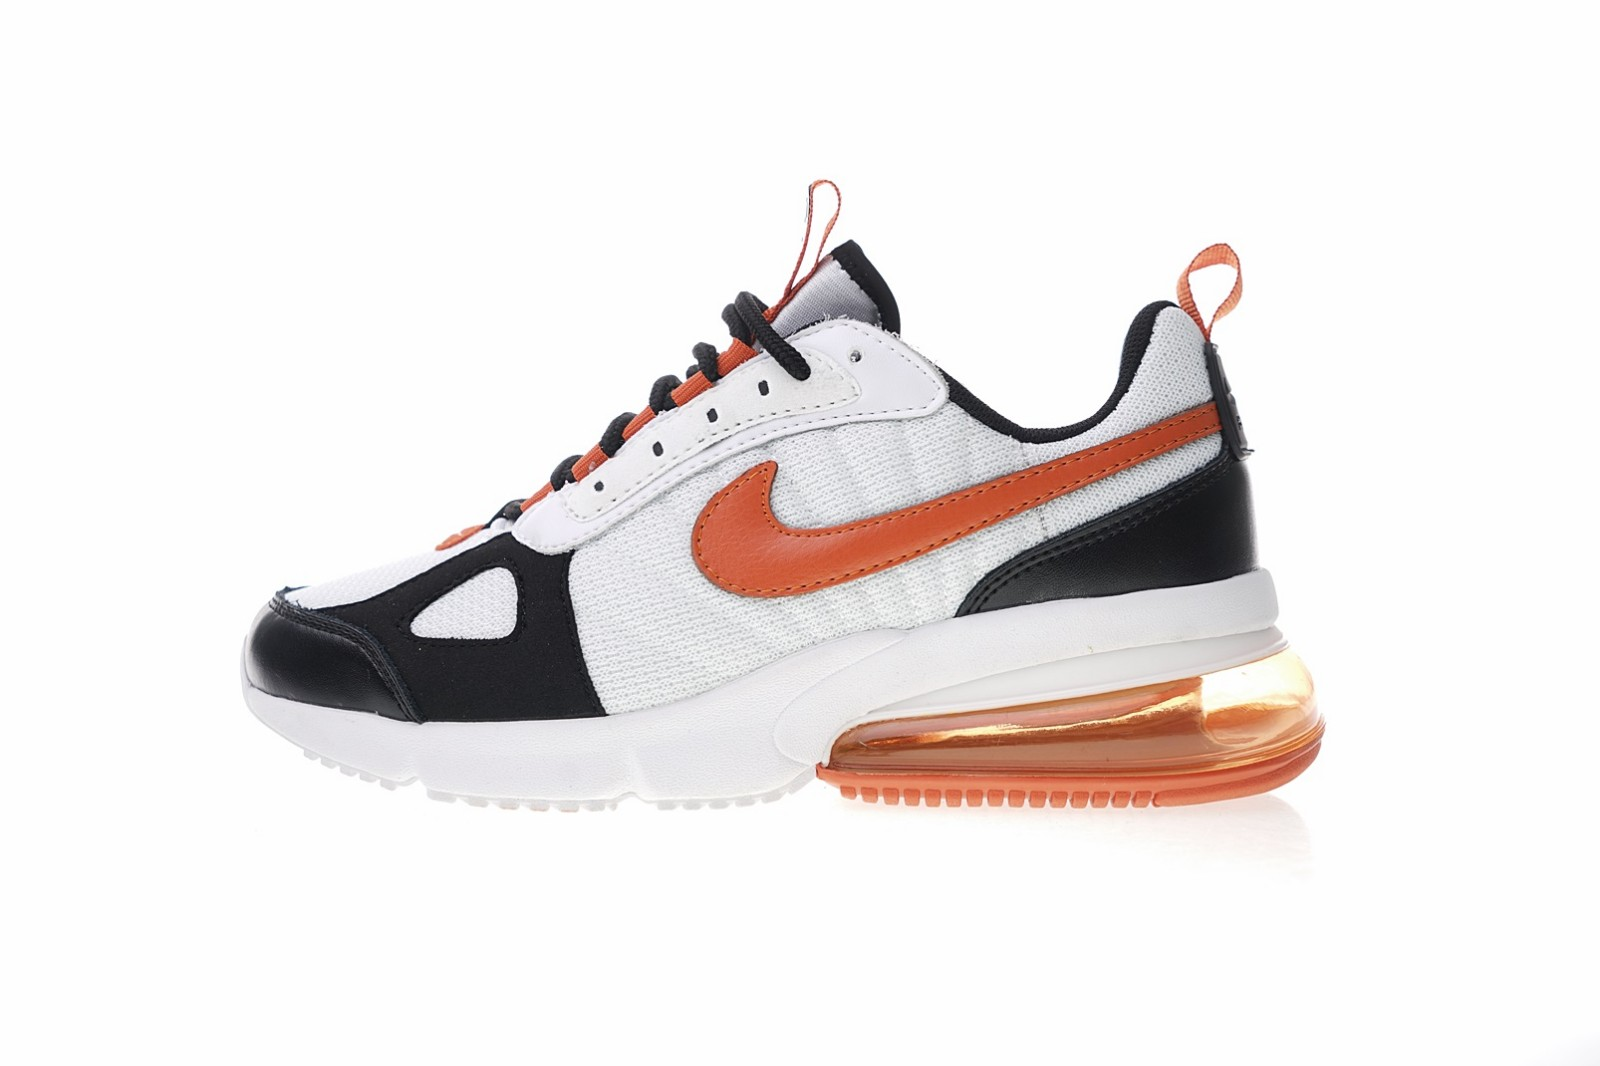 236fad0359 Prev Nike Air Force 270 Futura Orange White Black AO1569-006. Zoom. Move  your mouse over image or click to enlarge